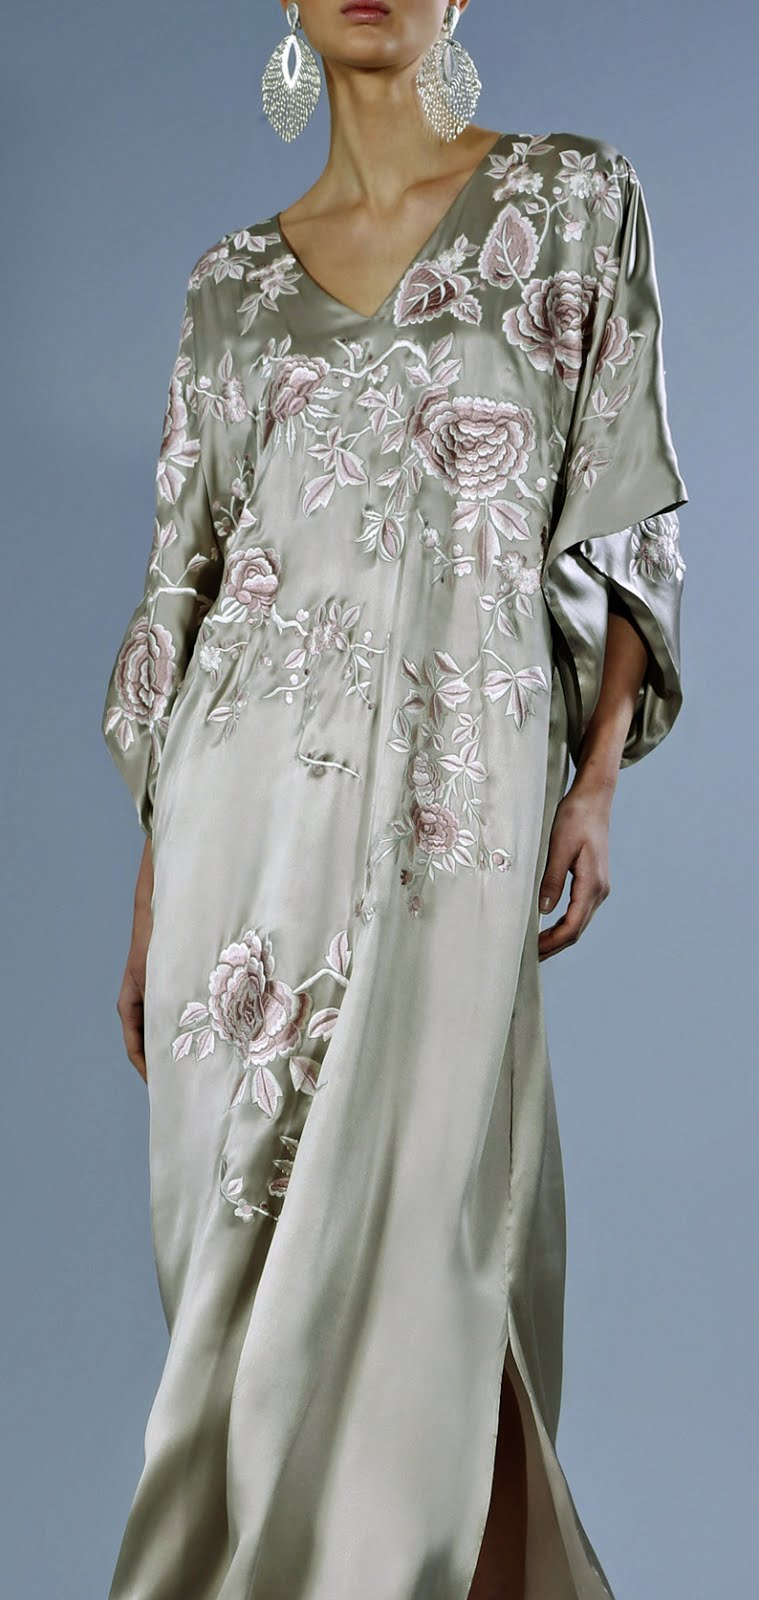 MUST HAVE SS\'18: Josie Natori Couture debuts exquisite caftans with ...